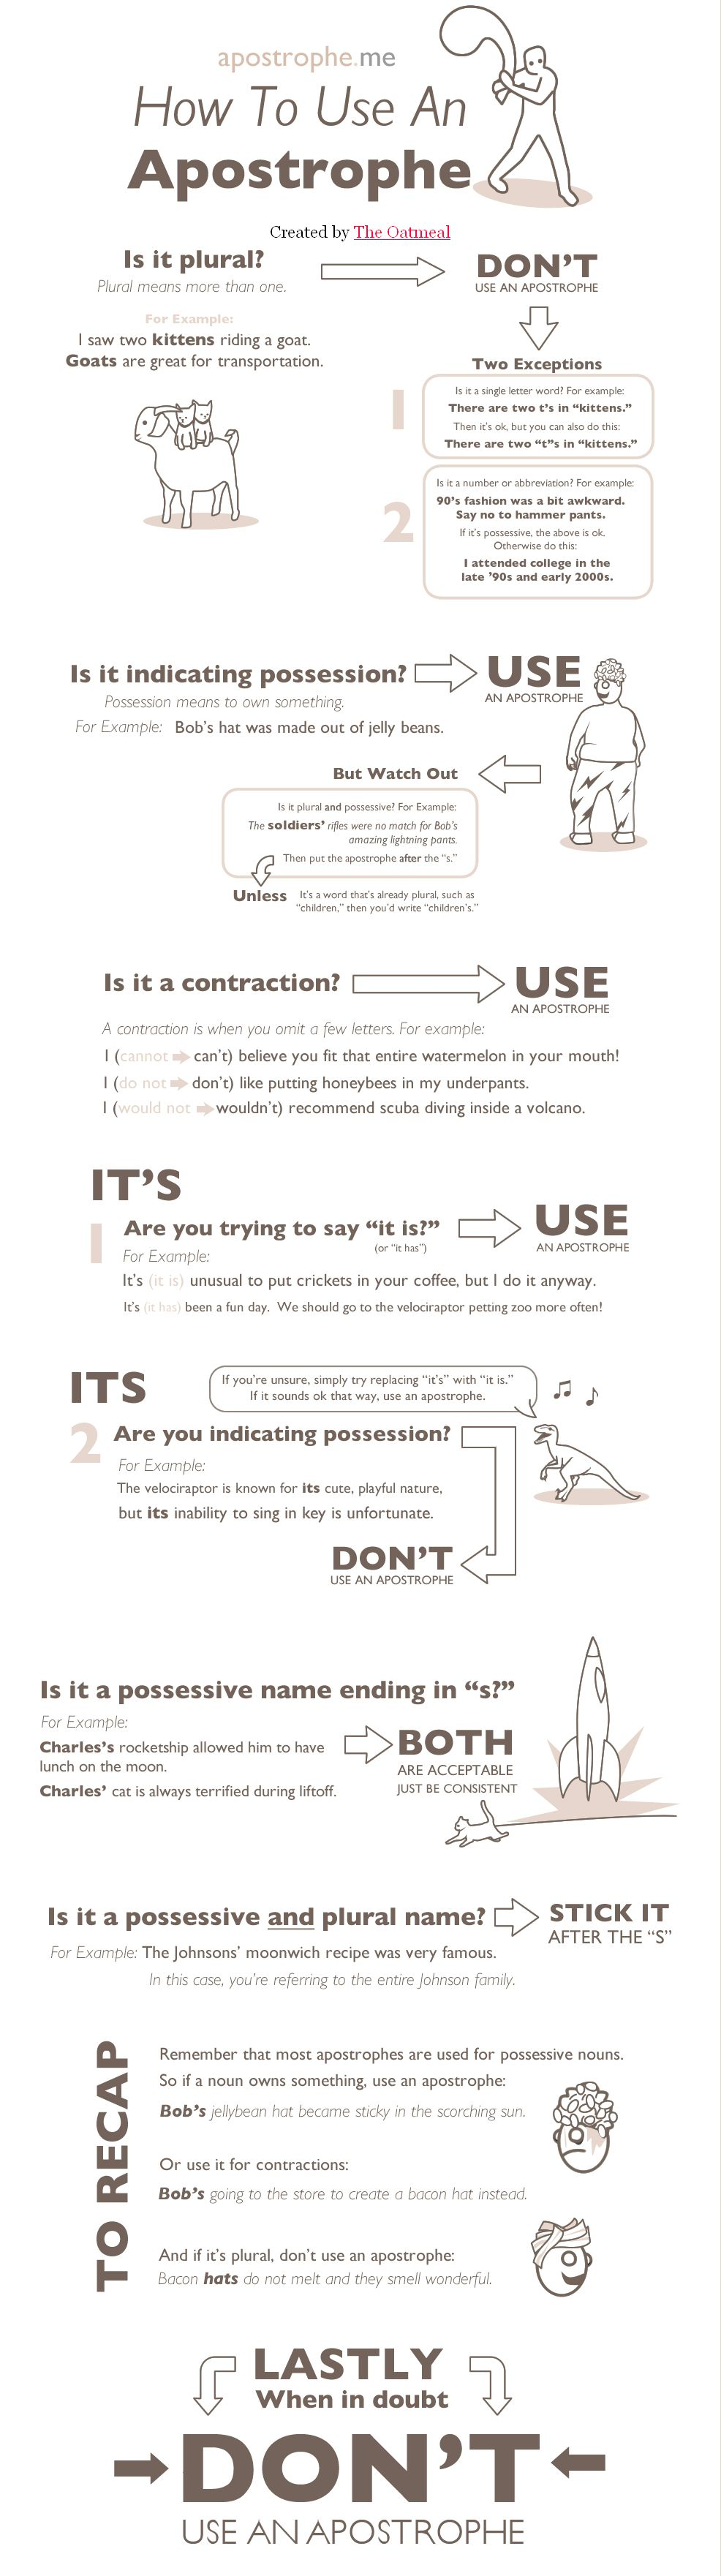 FireShot capture #072 - 'How To Use An Apostrophe - The Oatmeal